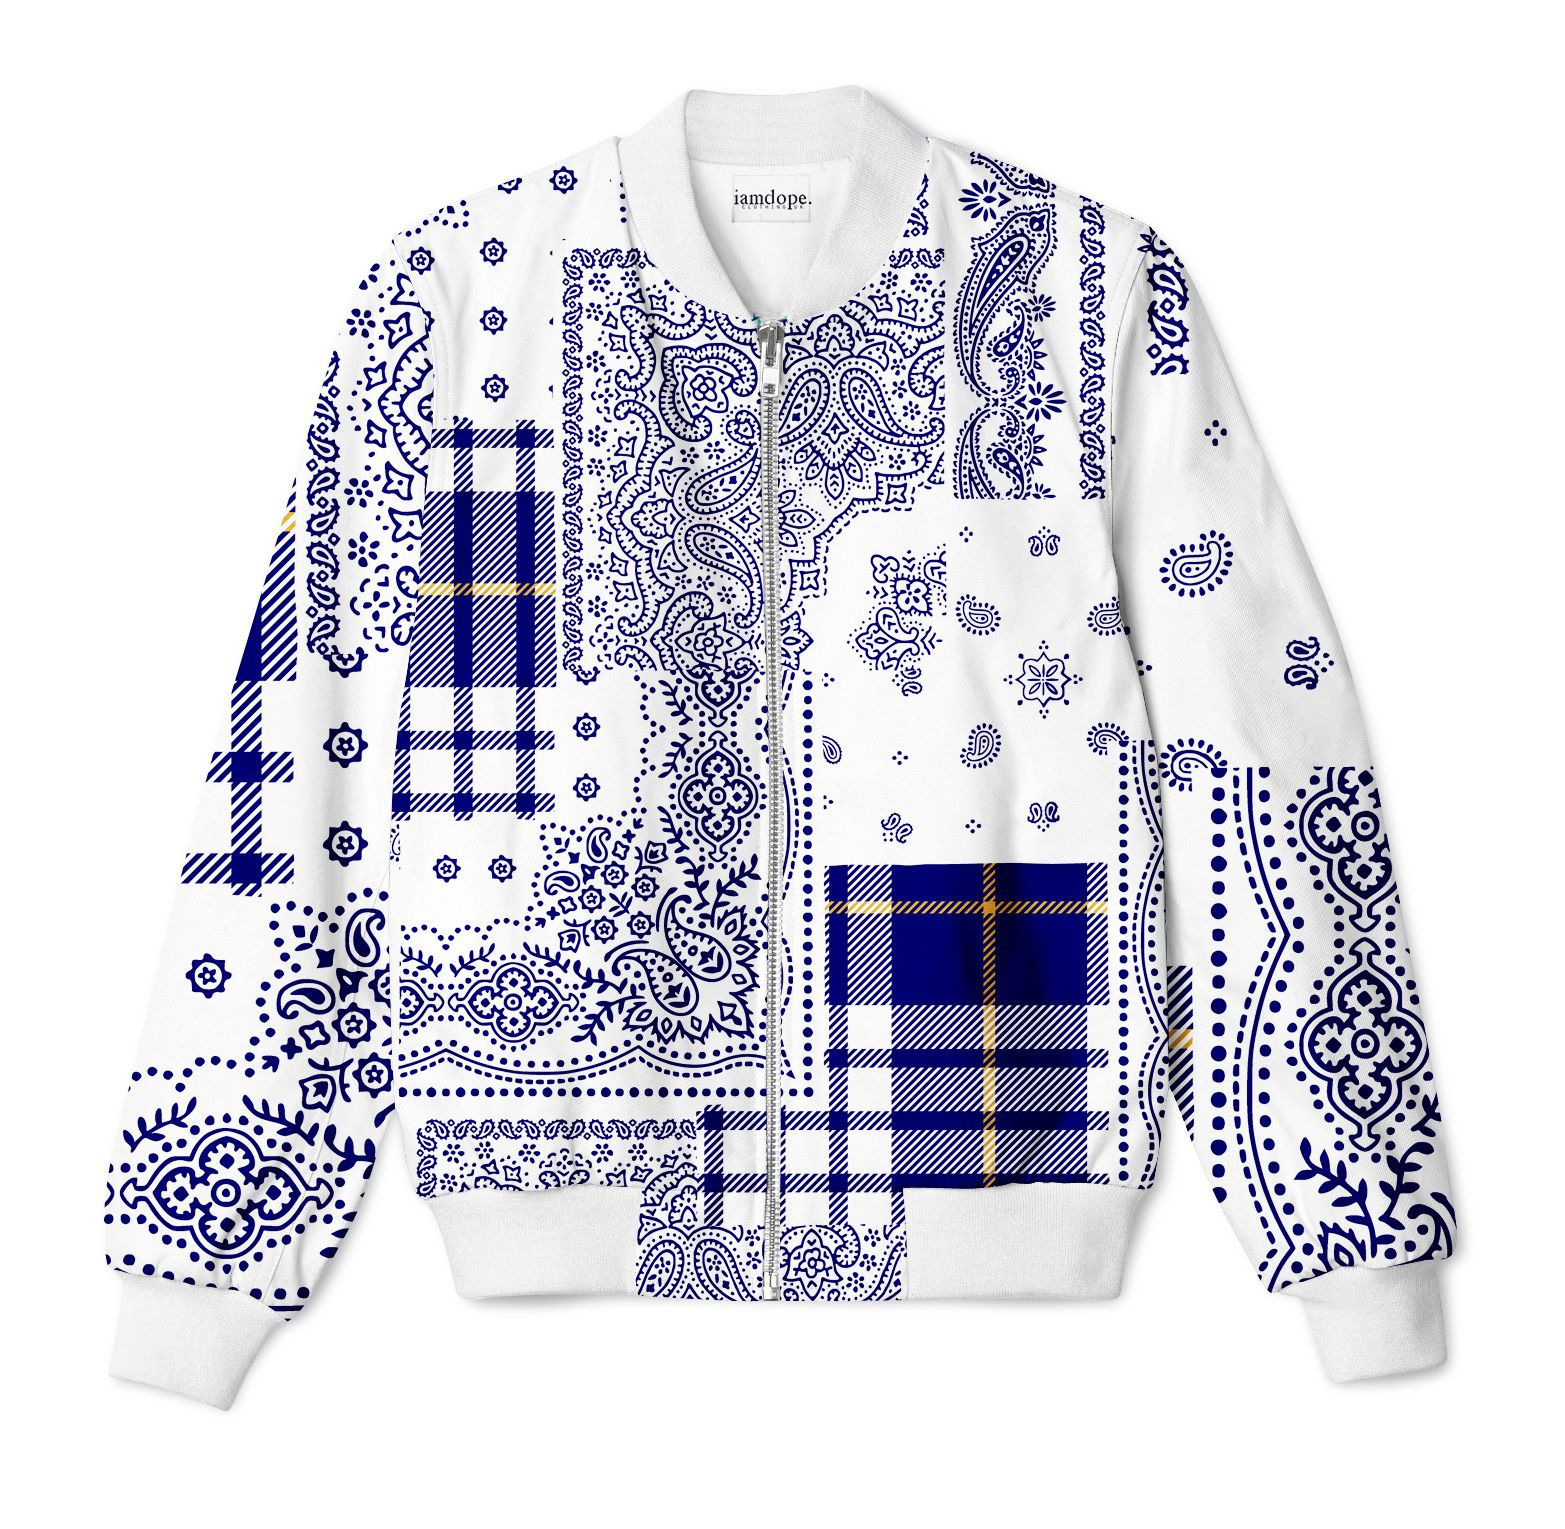 Pin by IAMDOPE on Bomber Jacket Patterned bomber jacket